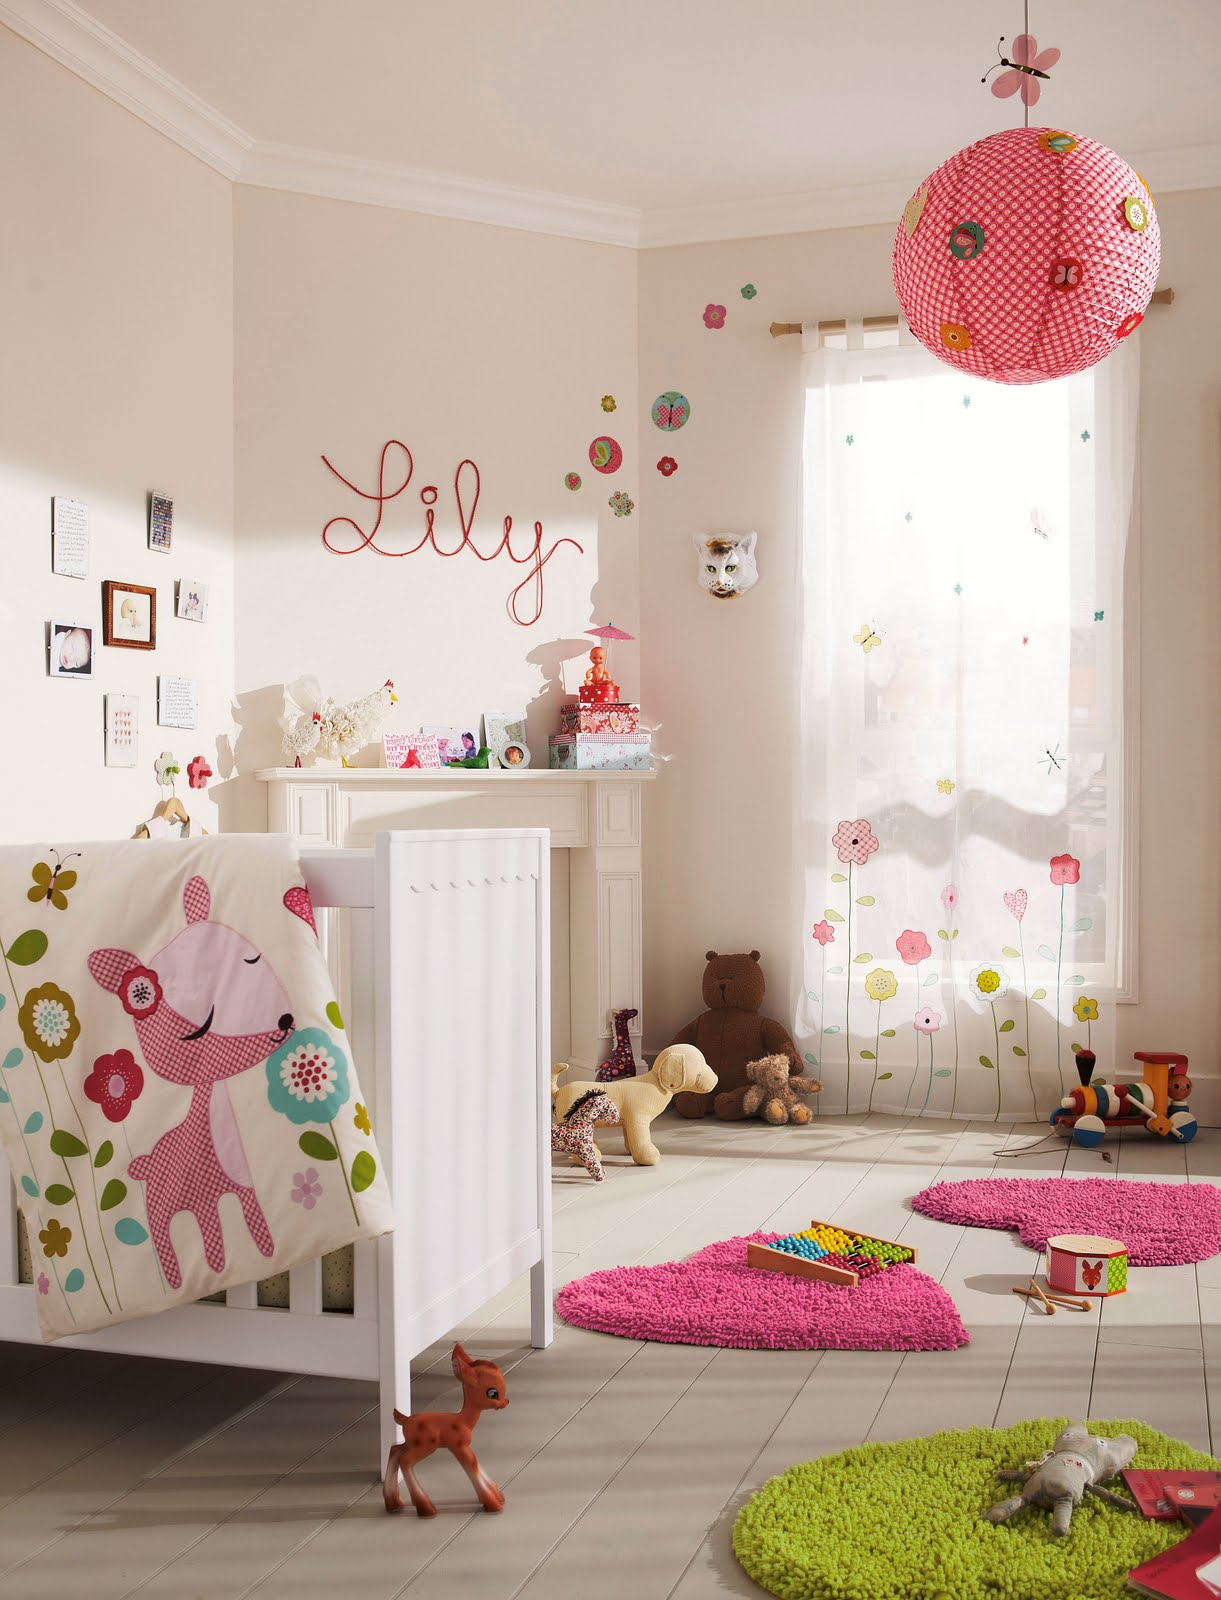 Pompons ch rie sheriff blog lifestyle mode famille for Decoration de chambre de fille